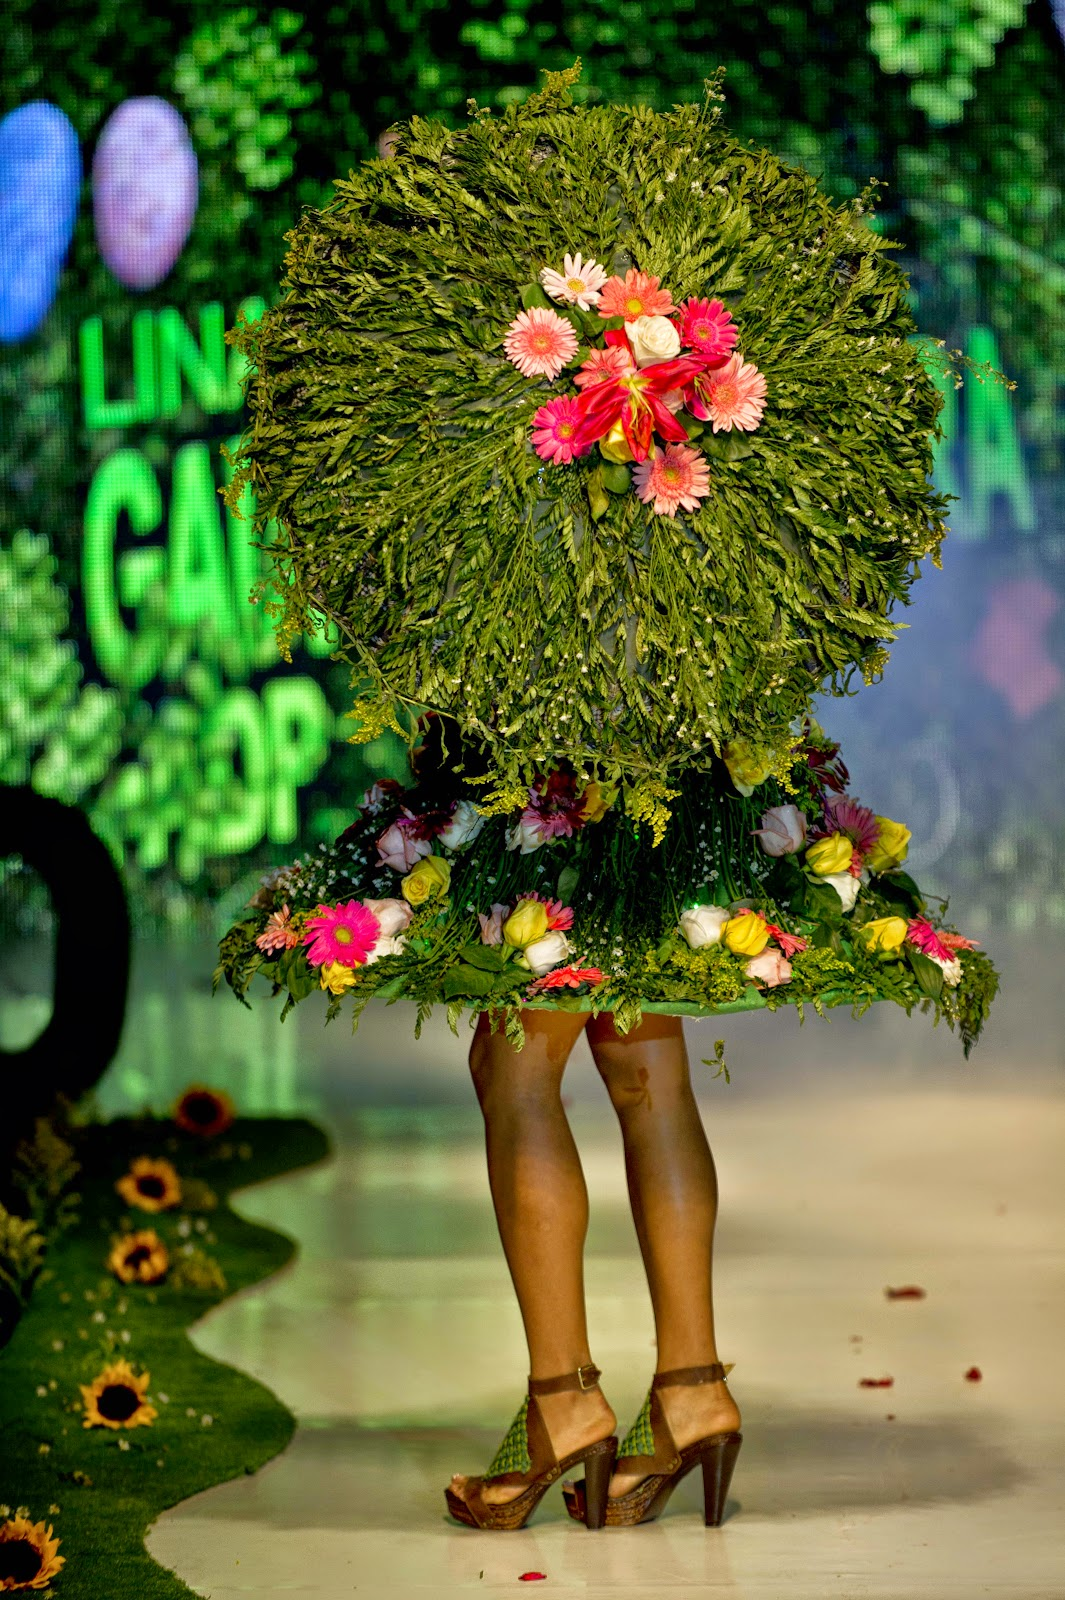 Bio Fashion Show 2014 in Images & HD Wallpapers